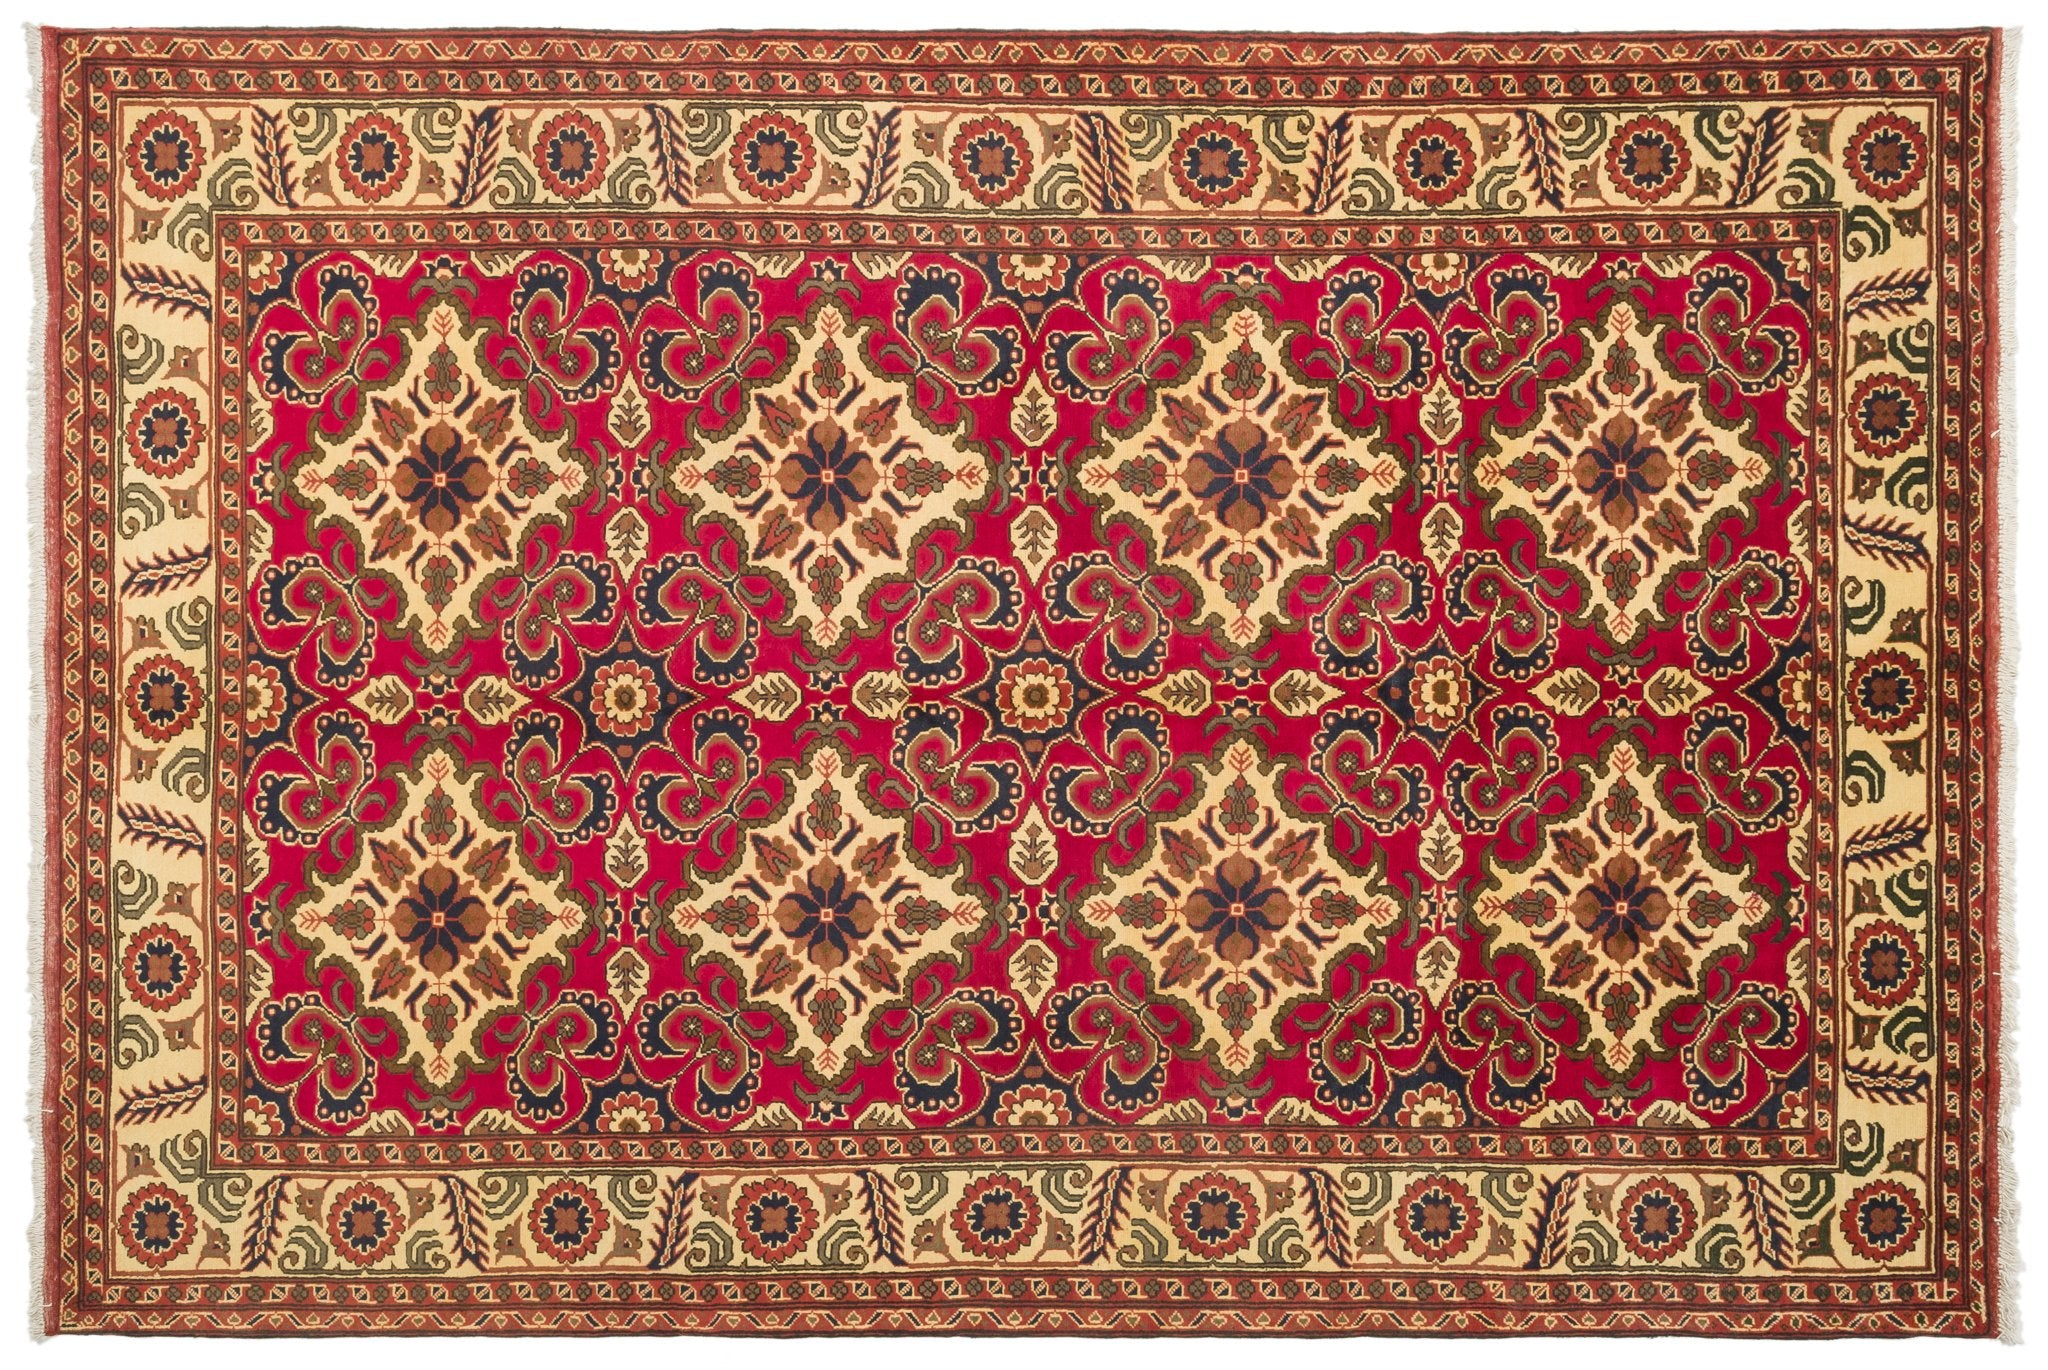 Vintage Turkish Rug Casimiro